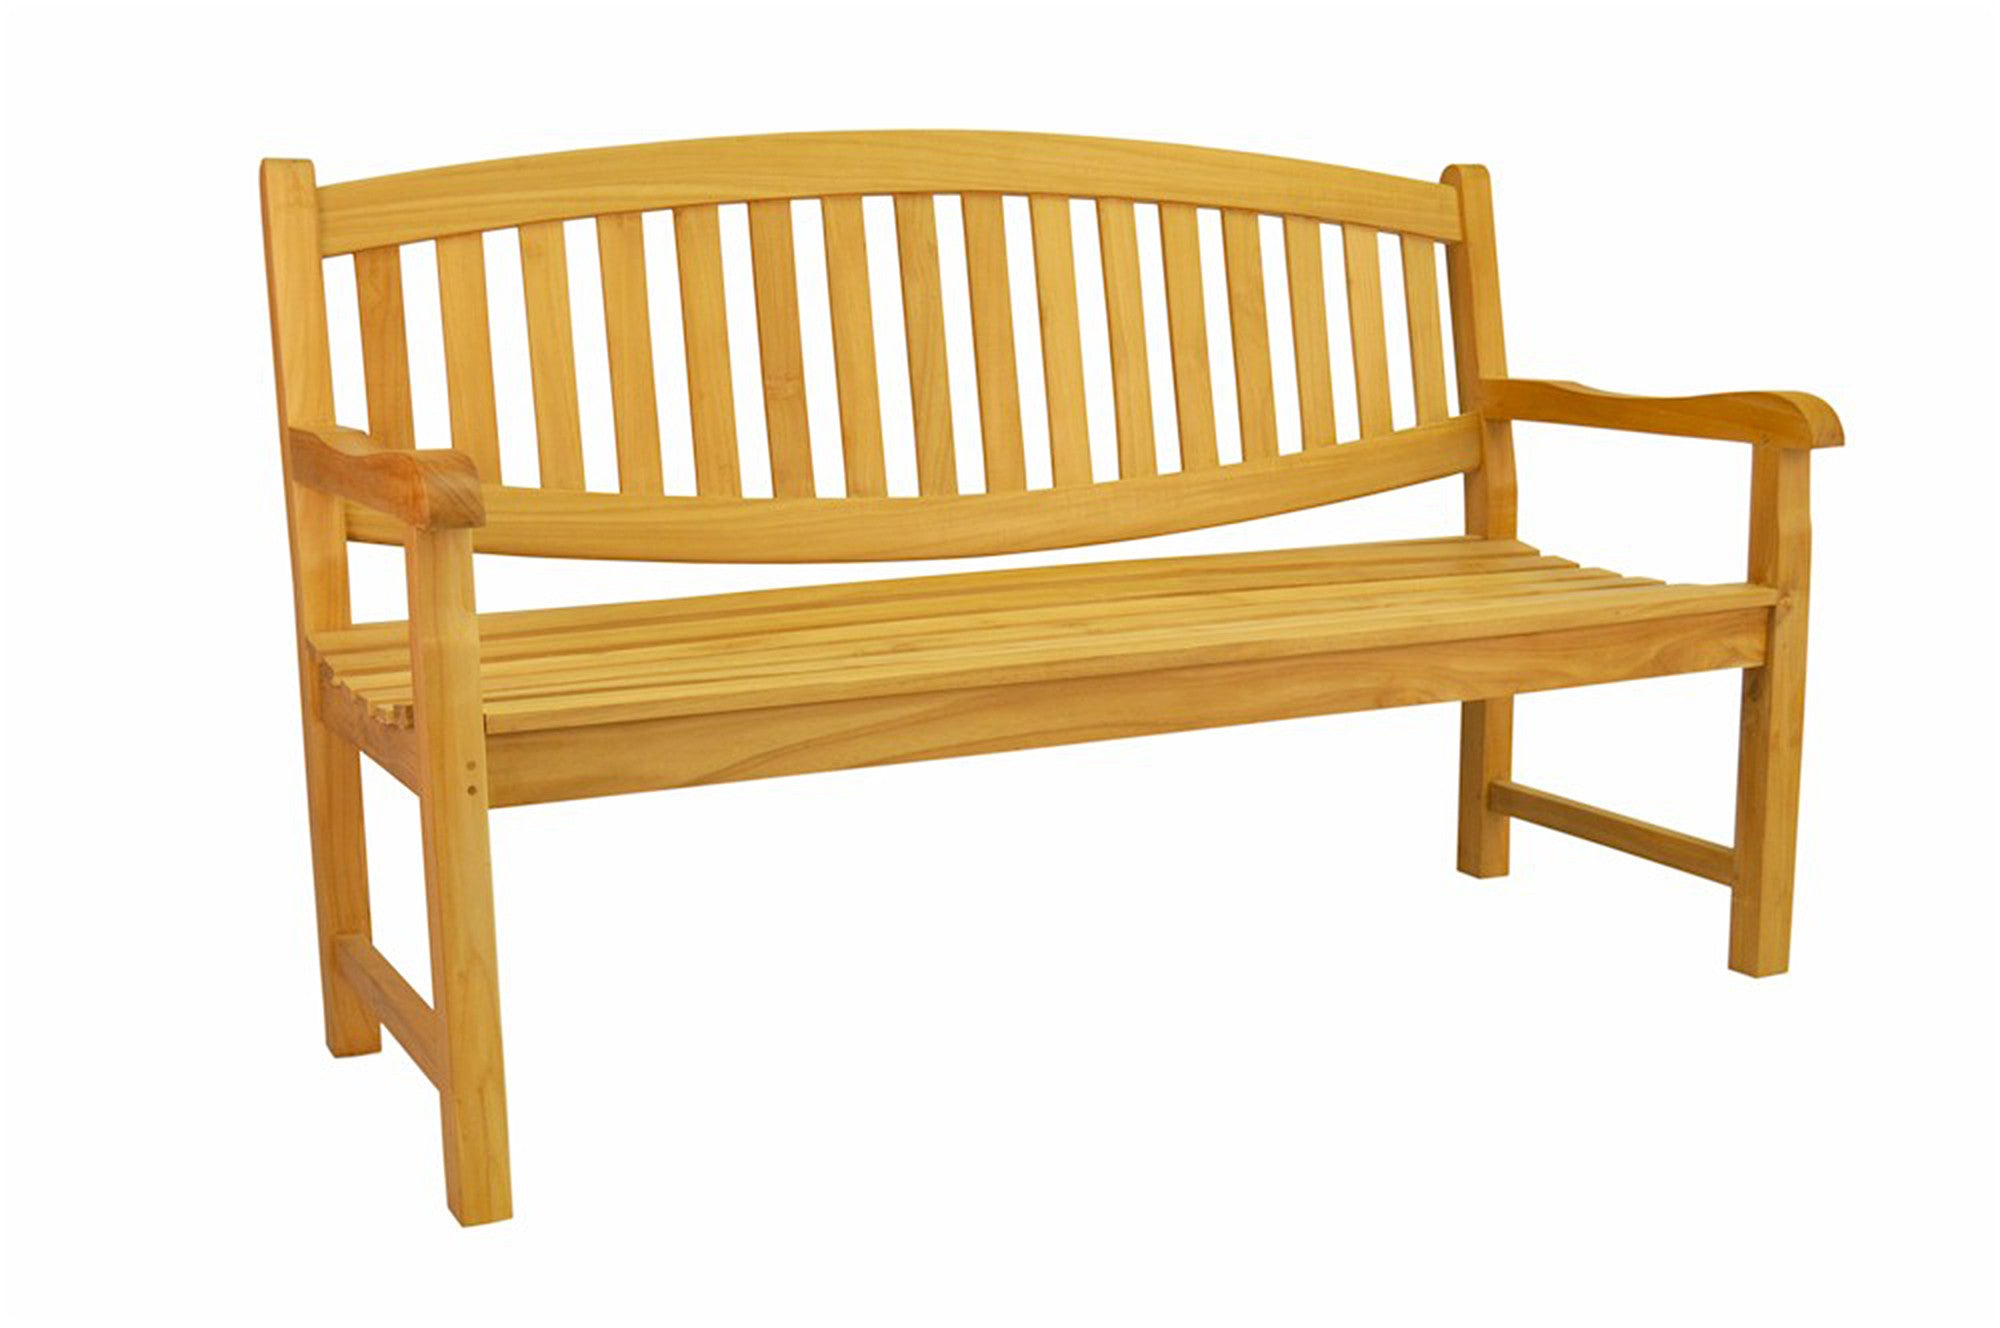 Anderson Teak | Kingston 3 Seat Teak Garden Bench |BH 005O   Furniture